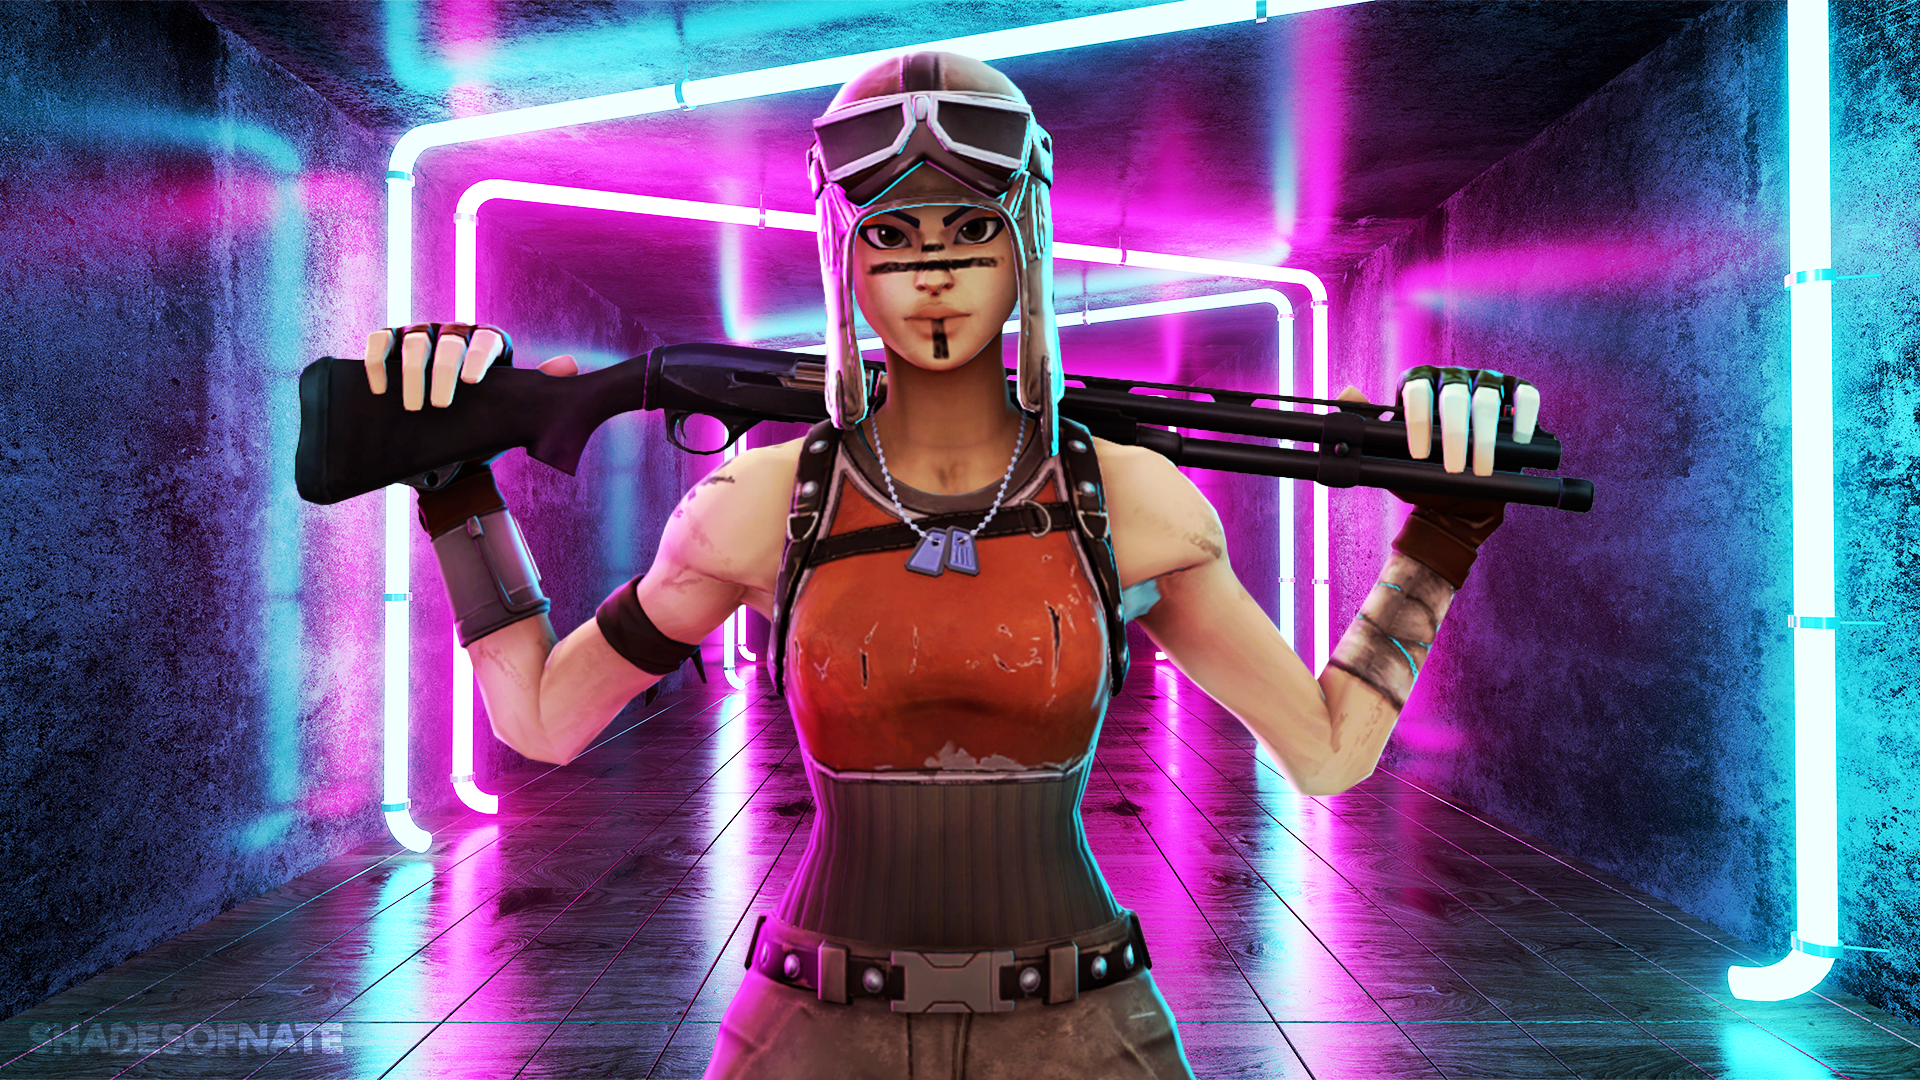 Renegade Raider Fortnite Posted By Ryan Cunningham